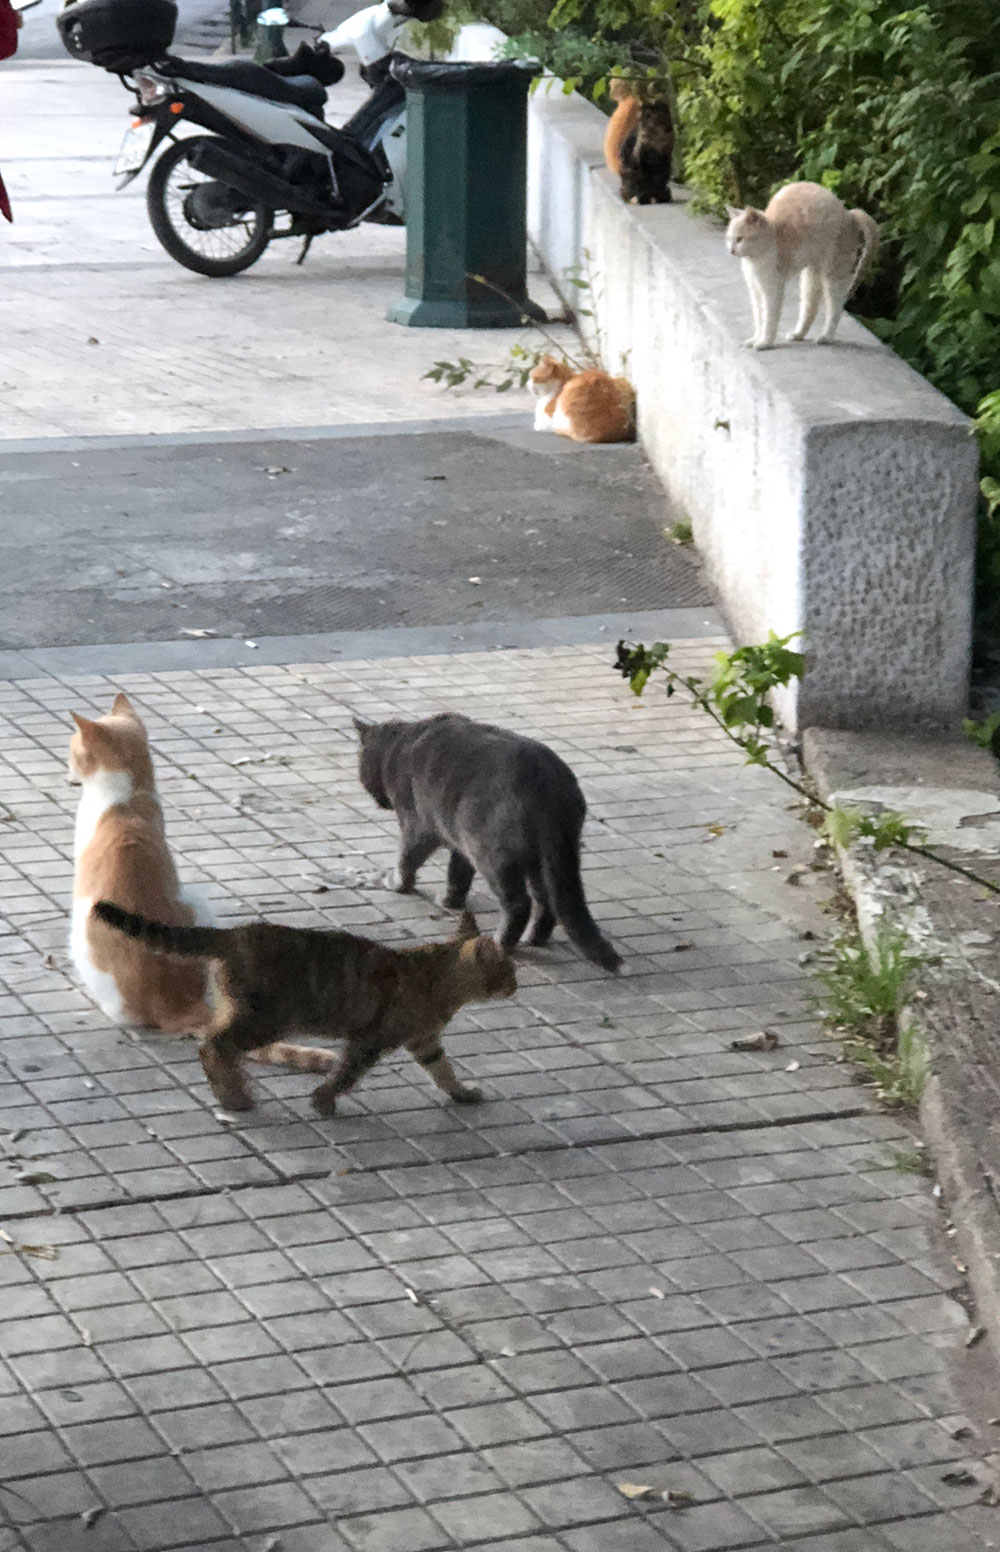 …and chat to a few street cats